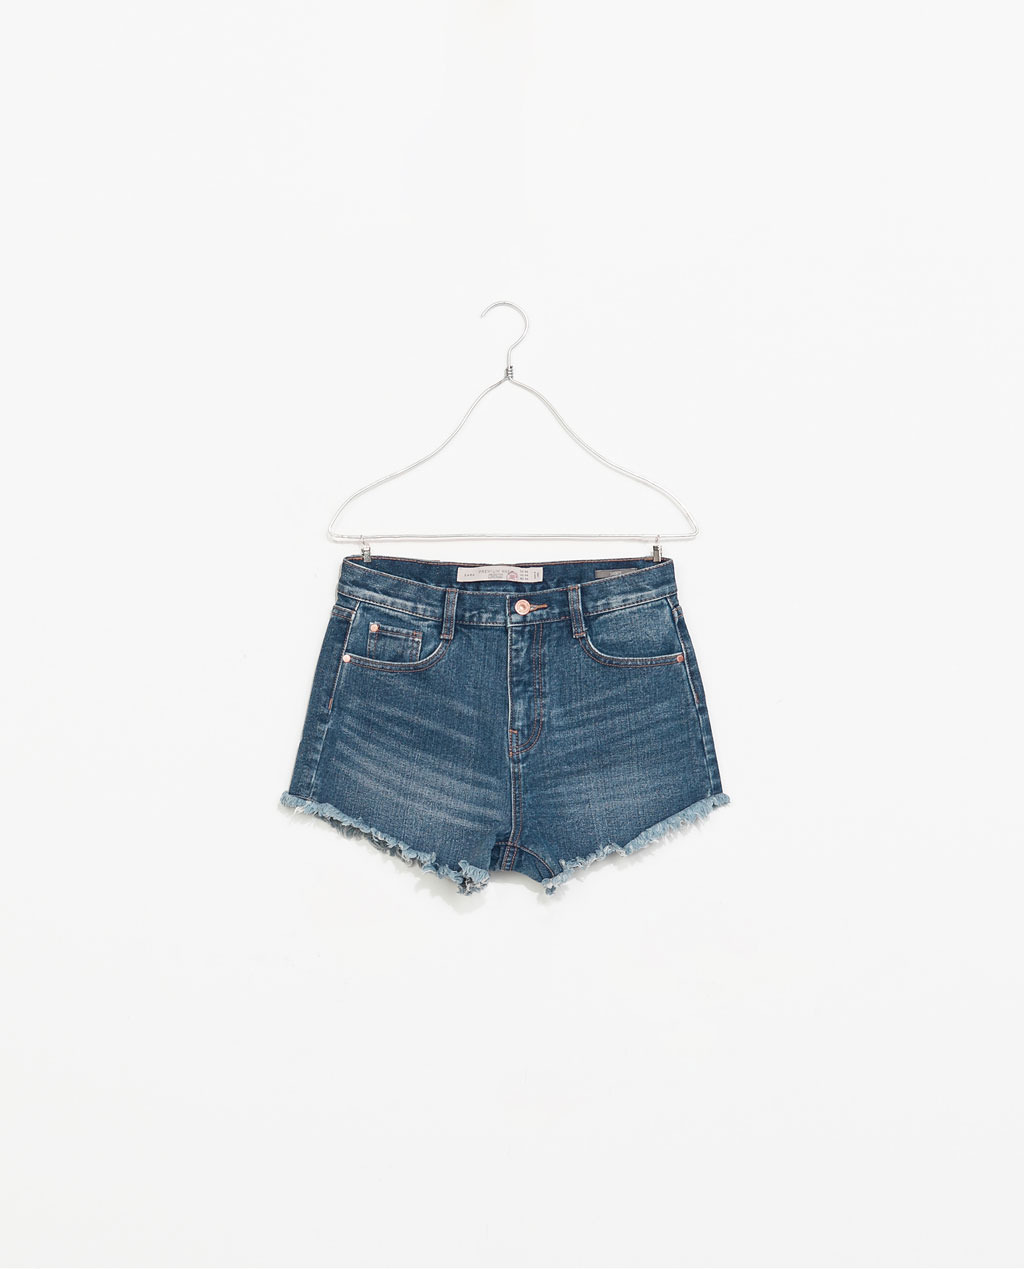 High Waisted Denim Shorts - pattern: plain; waist: high rise; pocket detail: traditional 5 pocket; predominant colour: denim; occasions: casual, holiday; fibres: cotton - 100%; texture group: denim; pattern type: fabric; season: s/s 2014; style: denim; length: short shorts; fit: slim leg